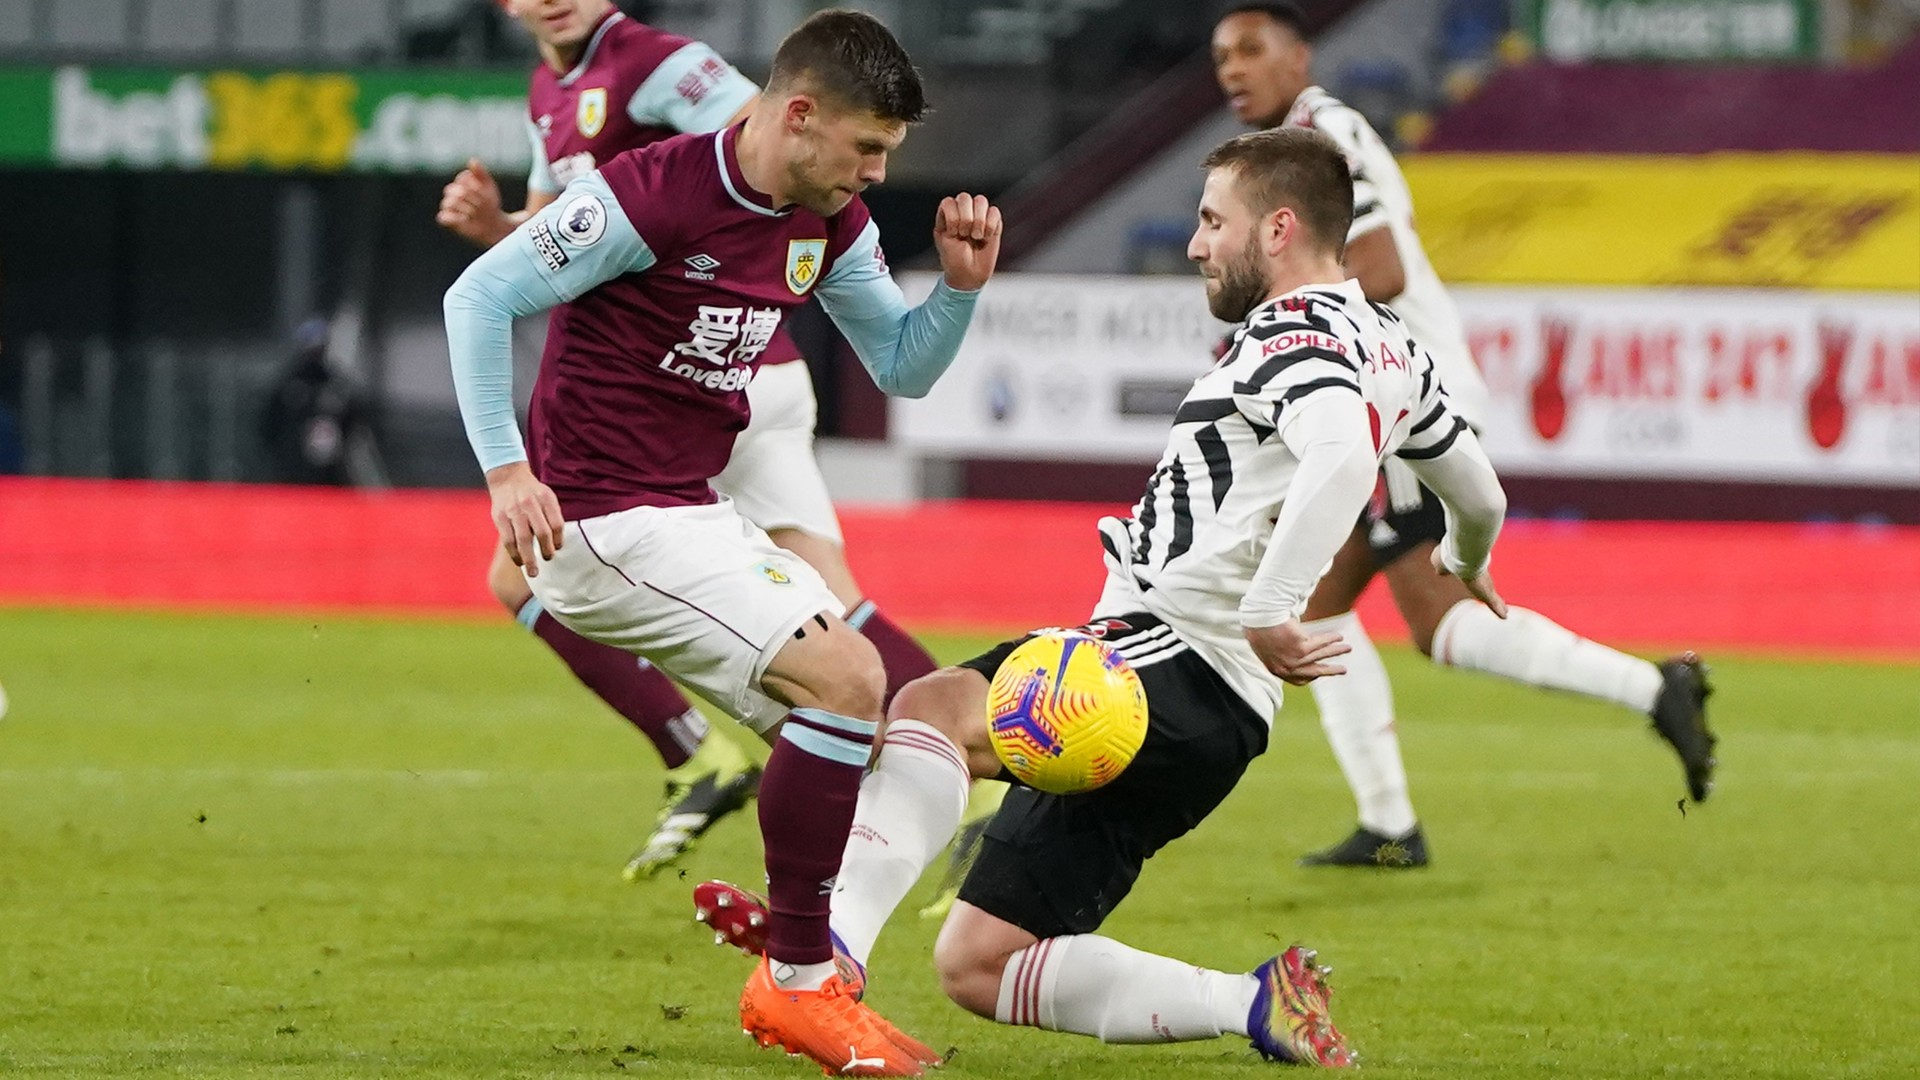 Premier League explains Shaw yellow card after VAR review in Manchester  United match at Burnley | Sporting News Canada